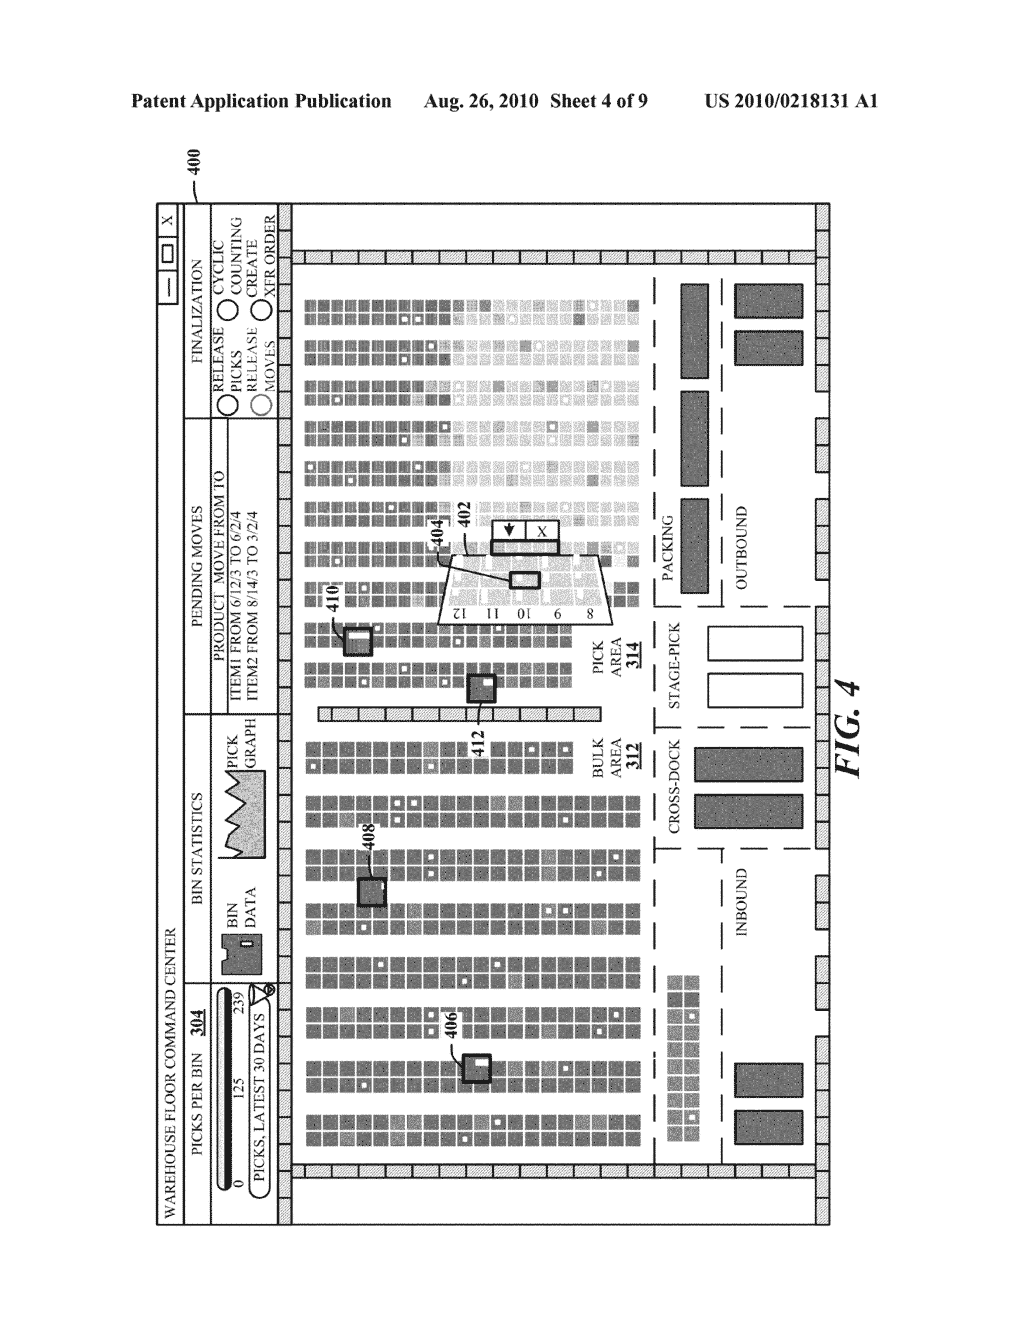 Warehouse Layout Diagram Images